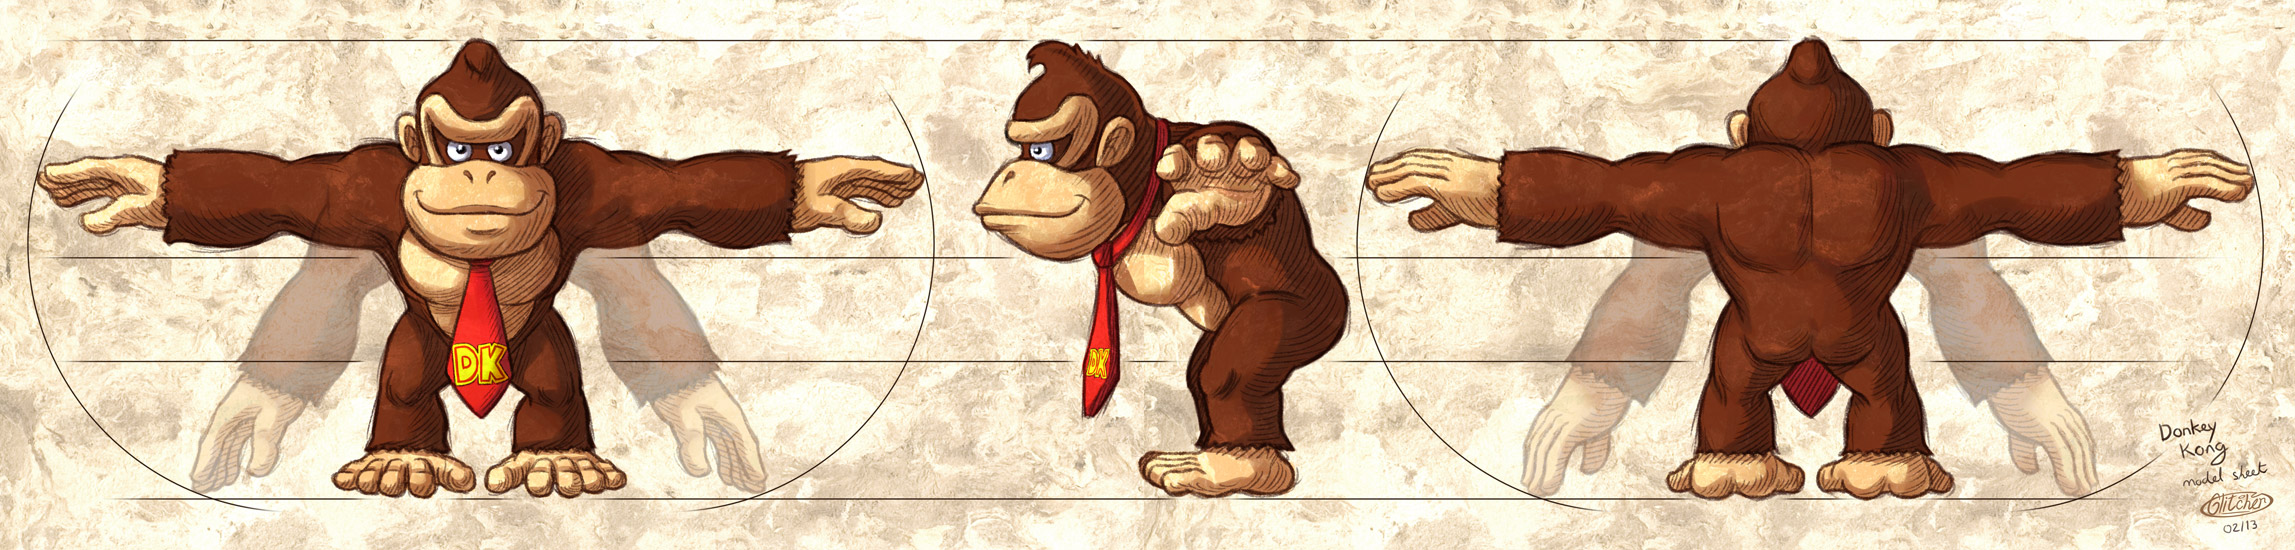 Donkey Kong model sheet by glitcher